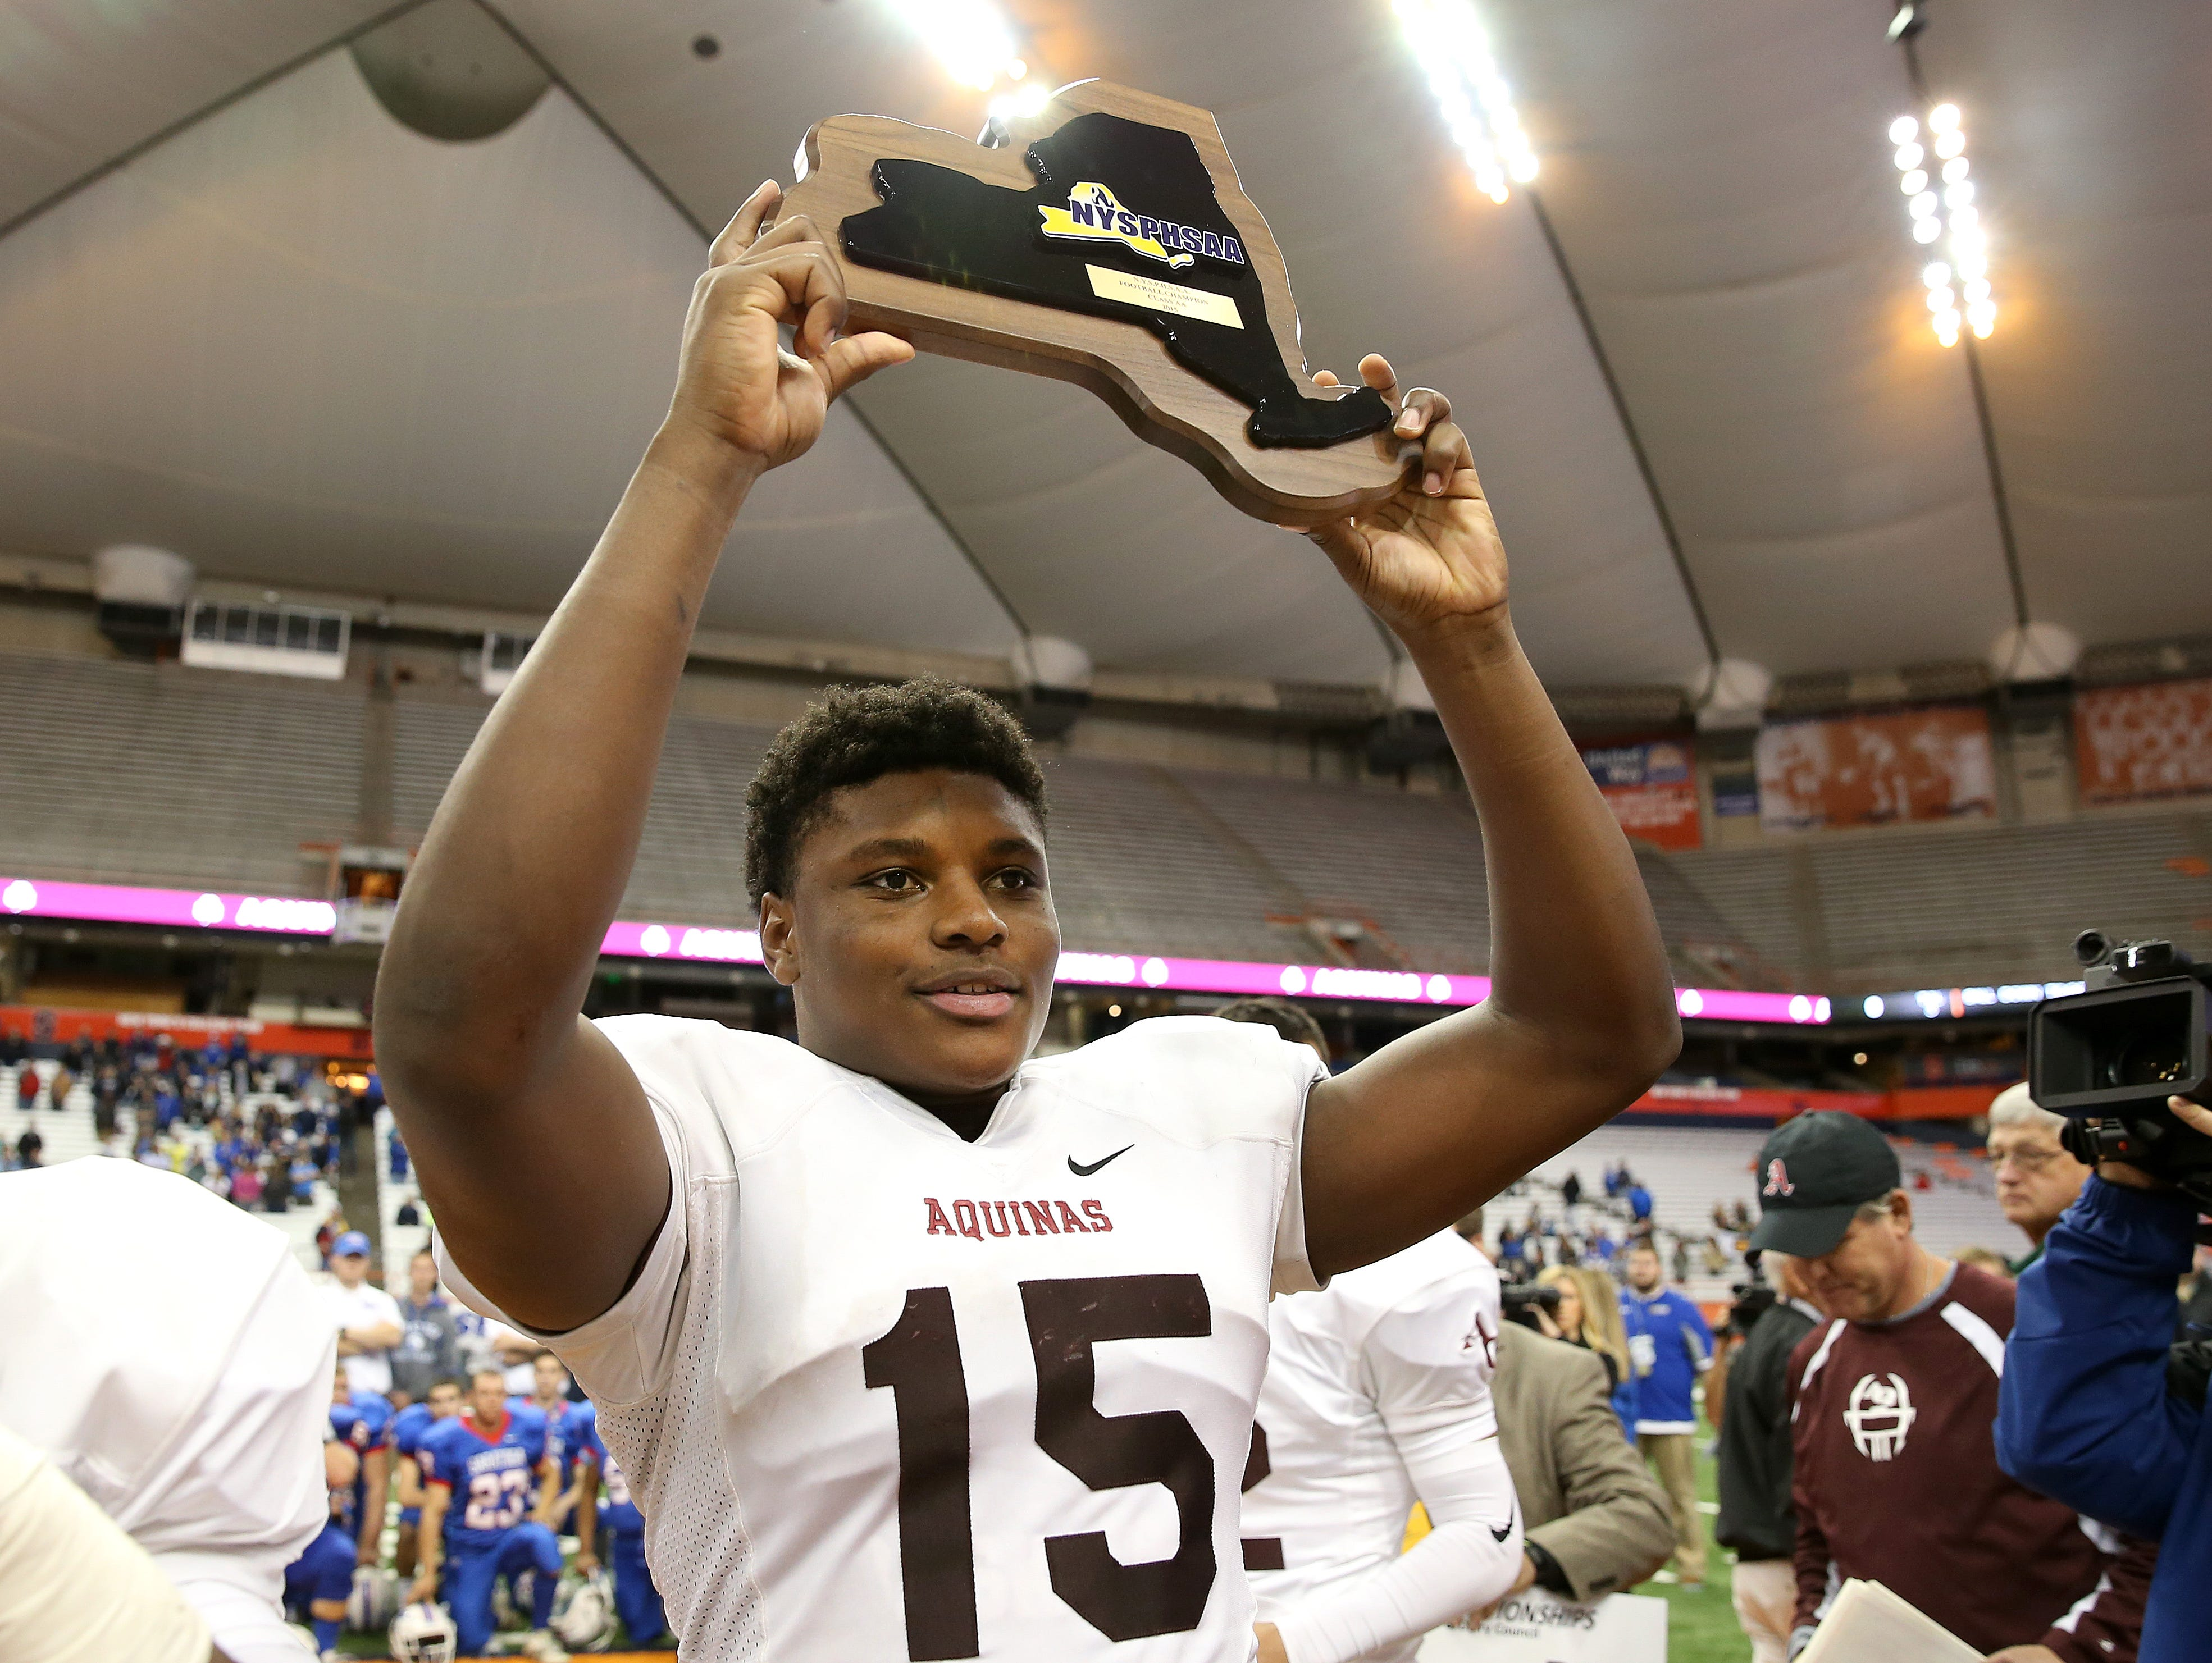 Aquinas' Jamir Jones holds up the championship plaque after Aquinas defeated Saratoga Springs 44-19 to win the state Class AA title on Sunday.